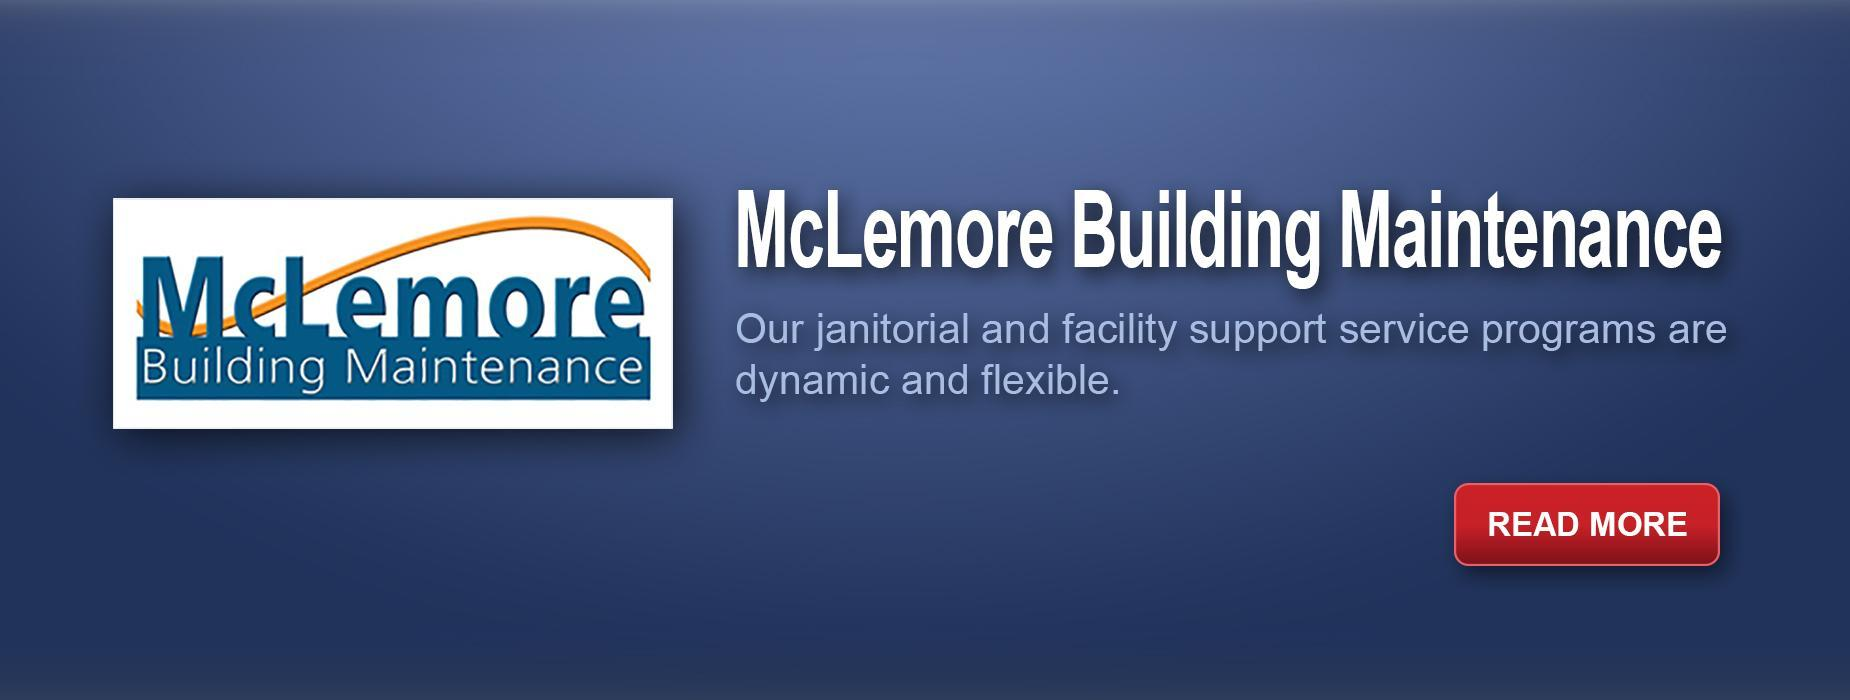 McLemore Building Maintenance - Cleaning, Read more